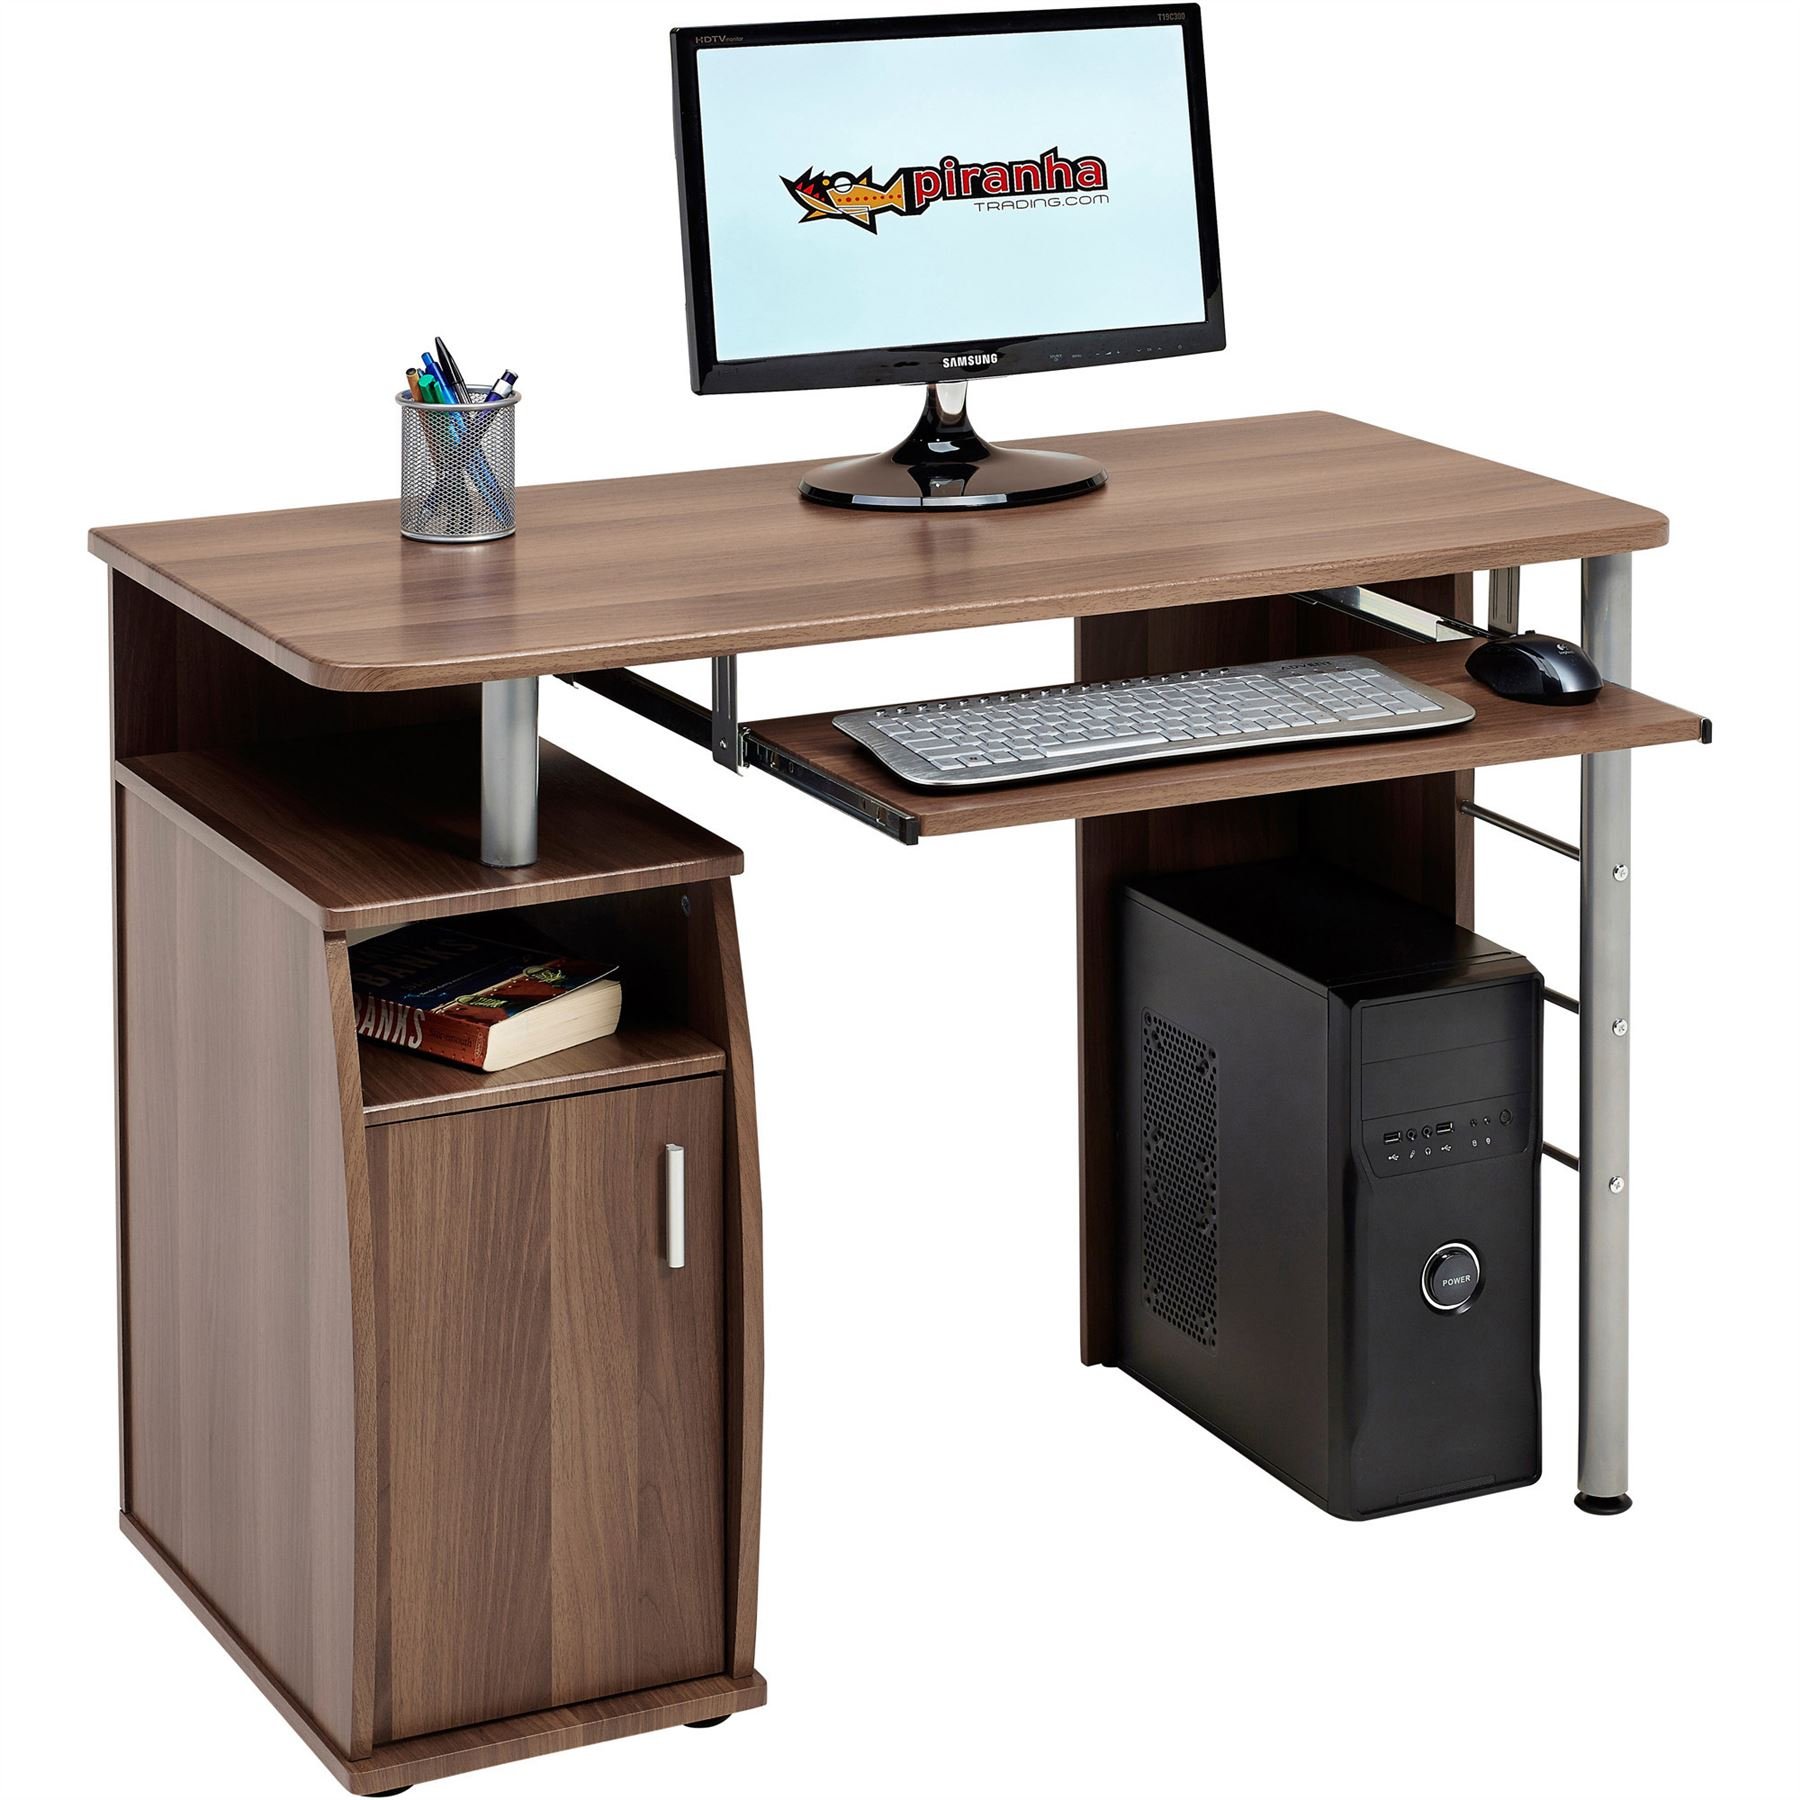 Computer Desk With Cupboard Shelves Storage For Home